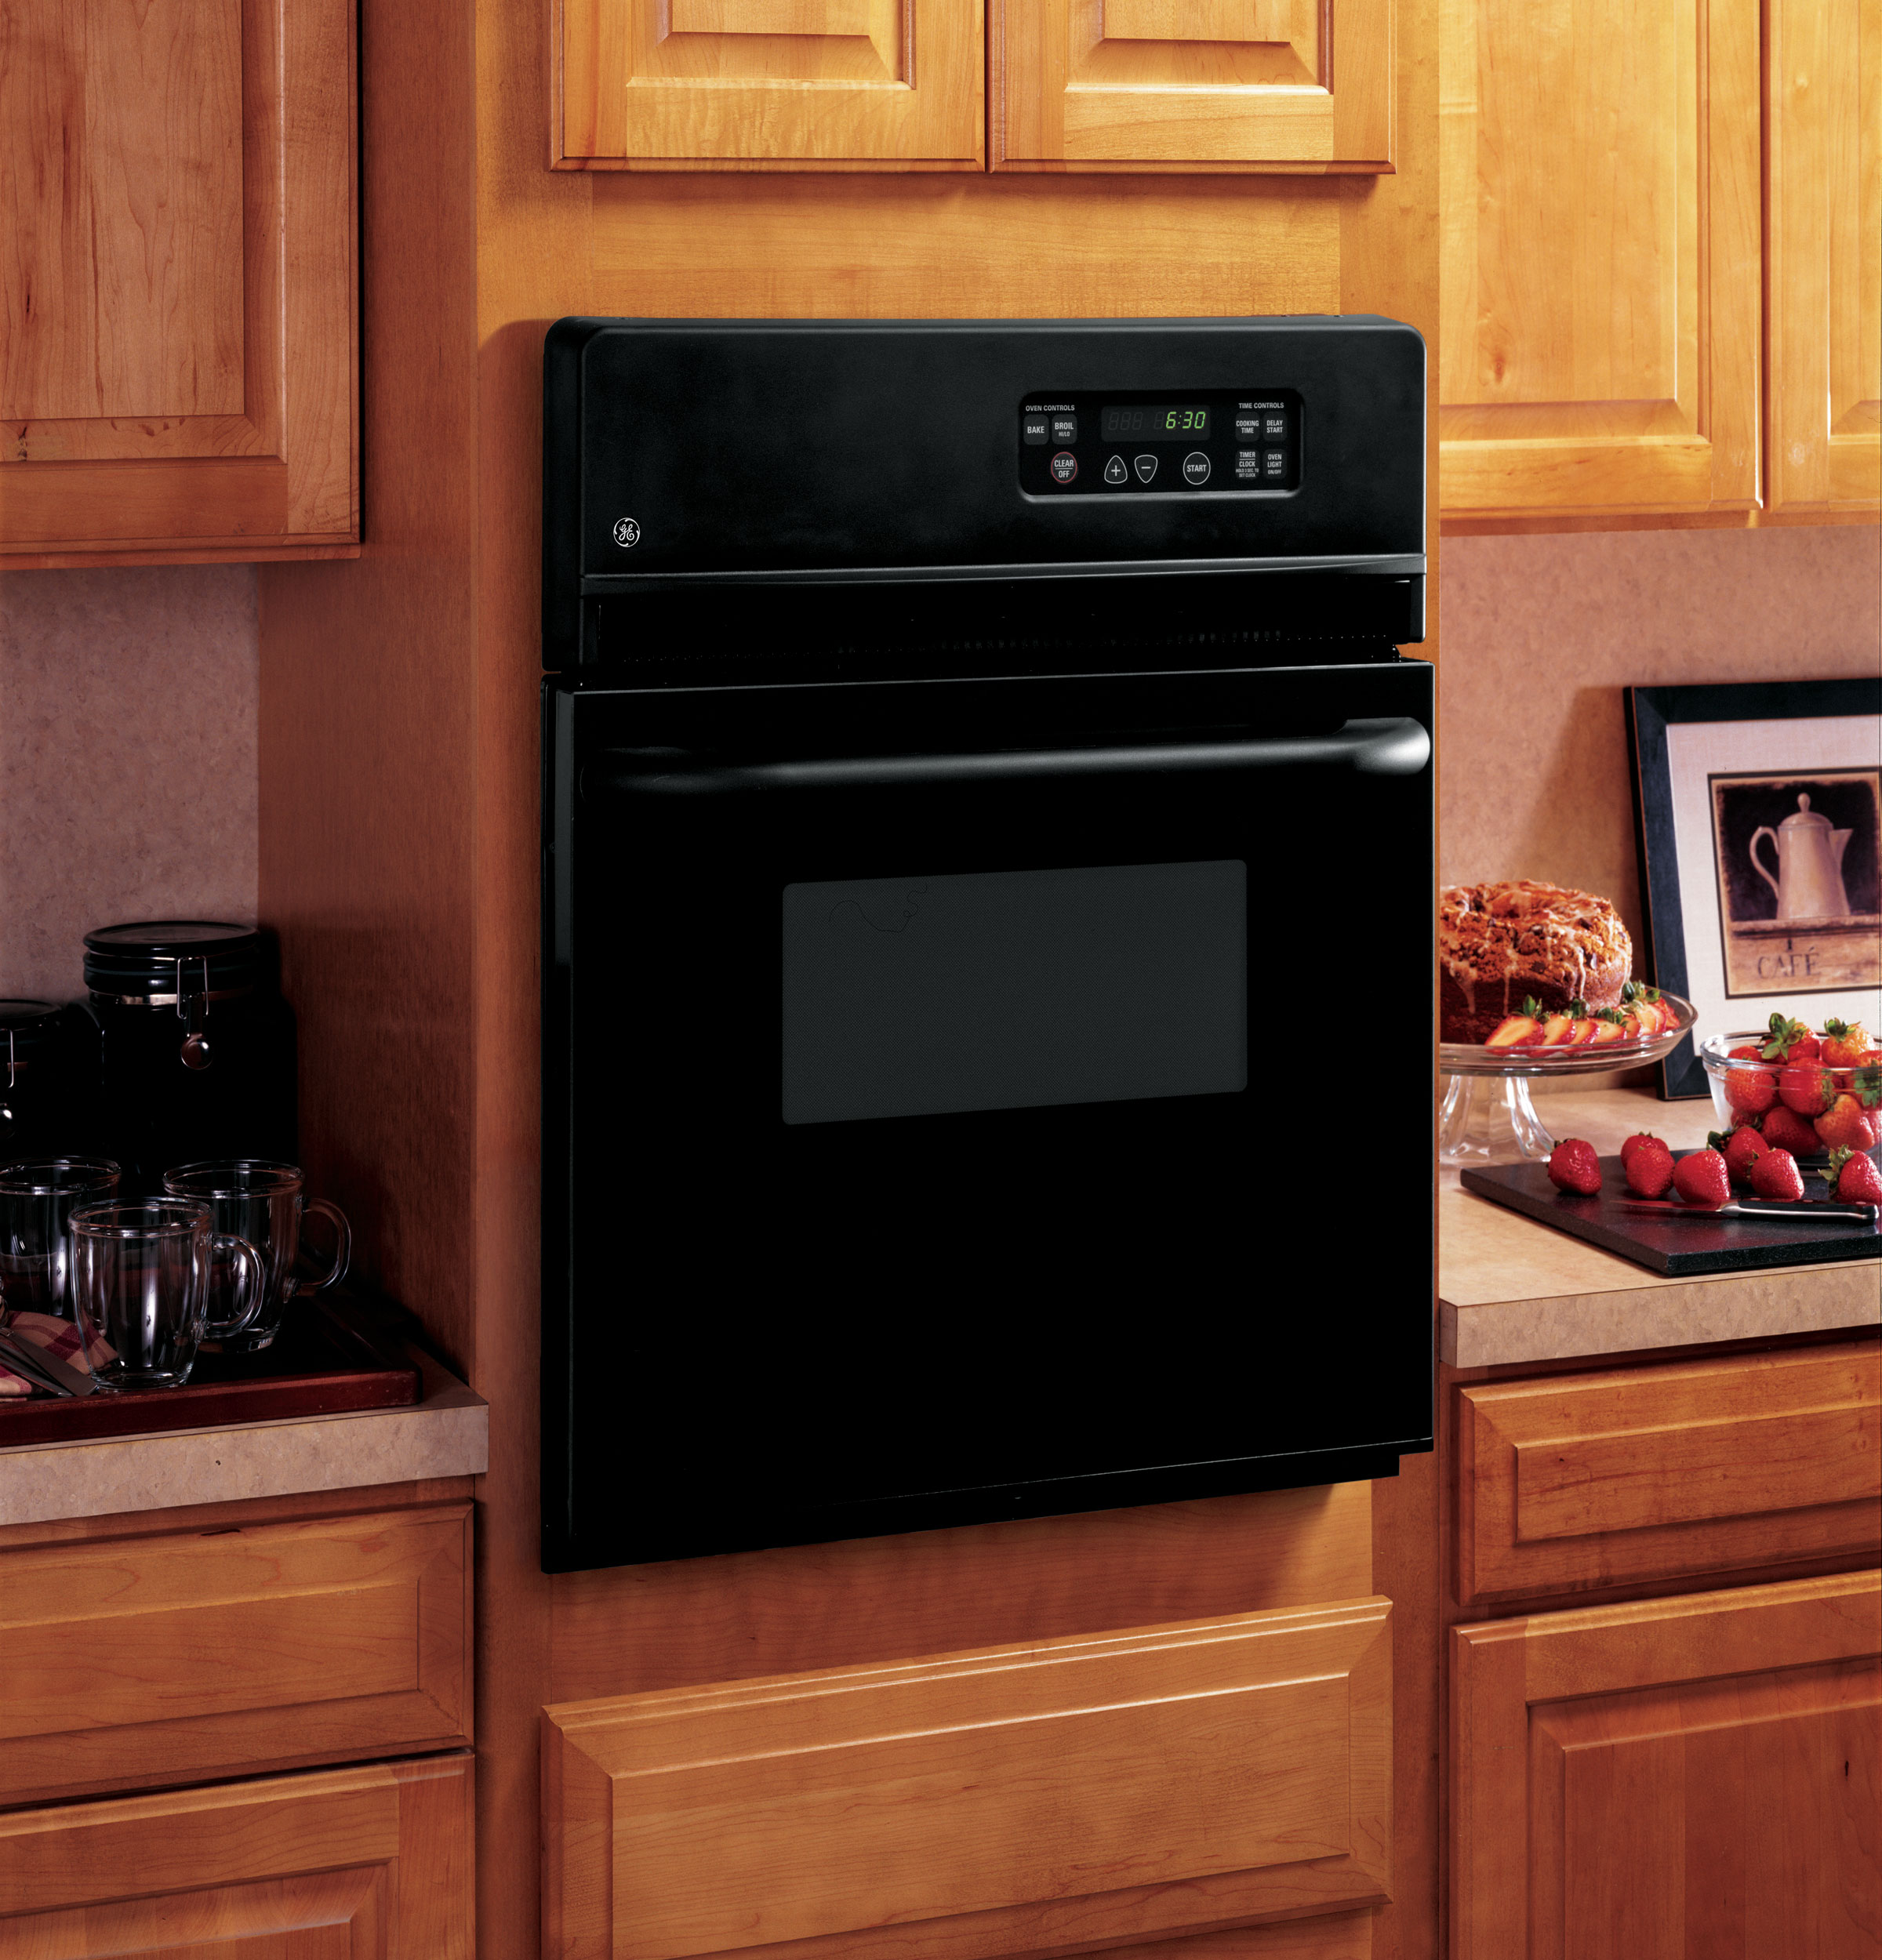 Electric Wall Oven 24 Inch Gear 24 Electric Single Standard Clean Wall Oven Jrs06bjbb Ge